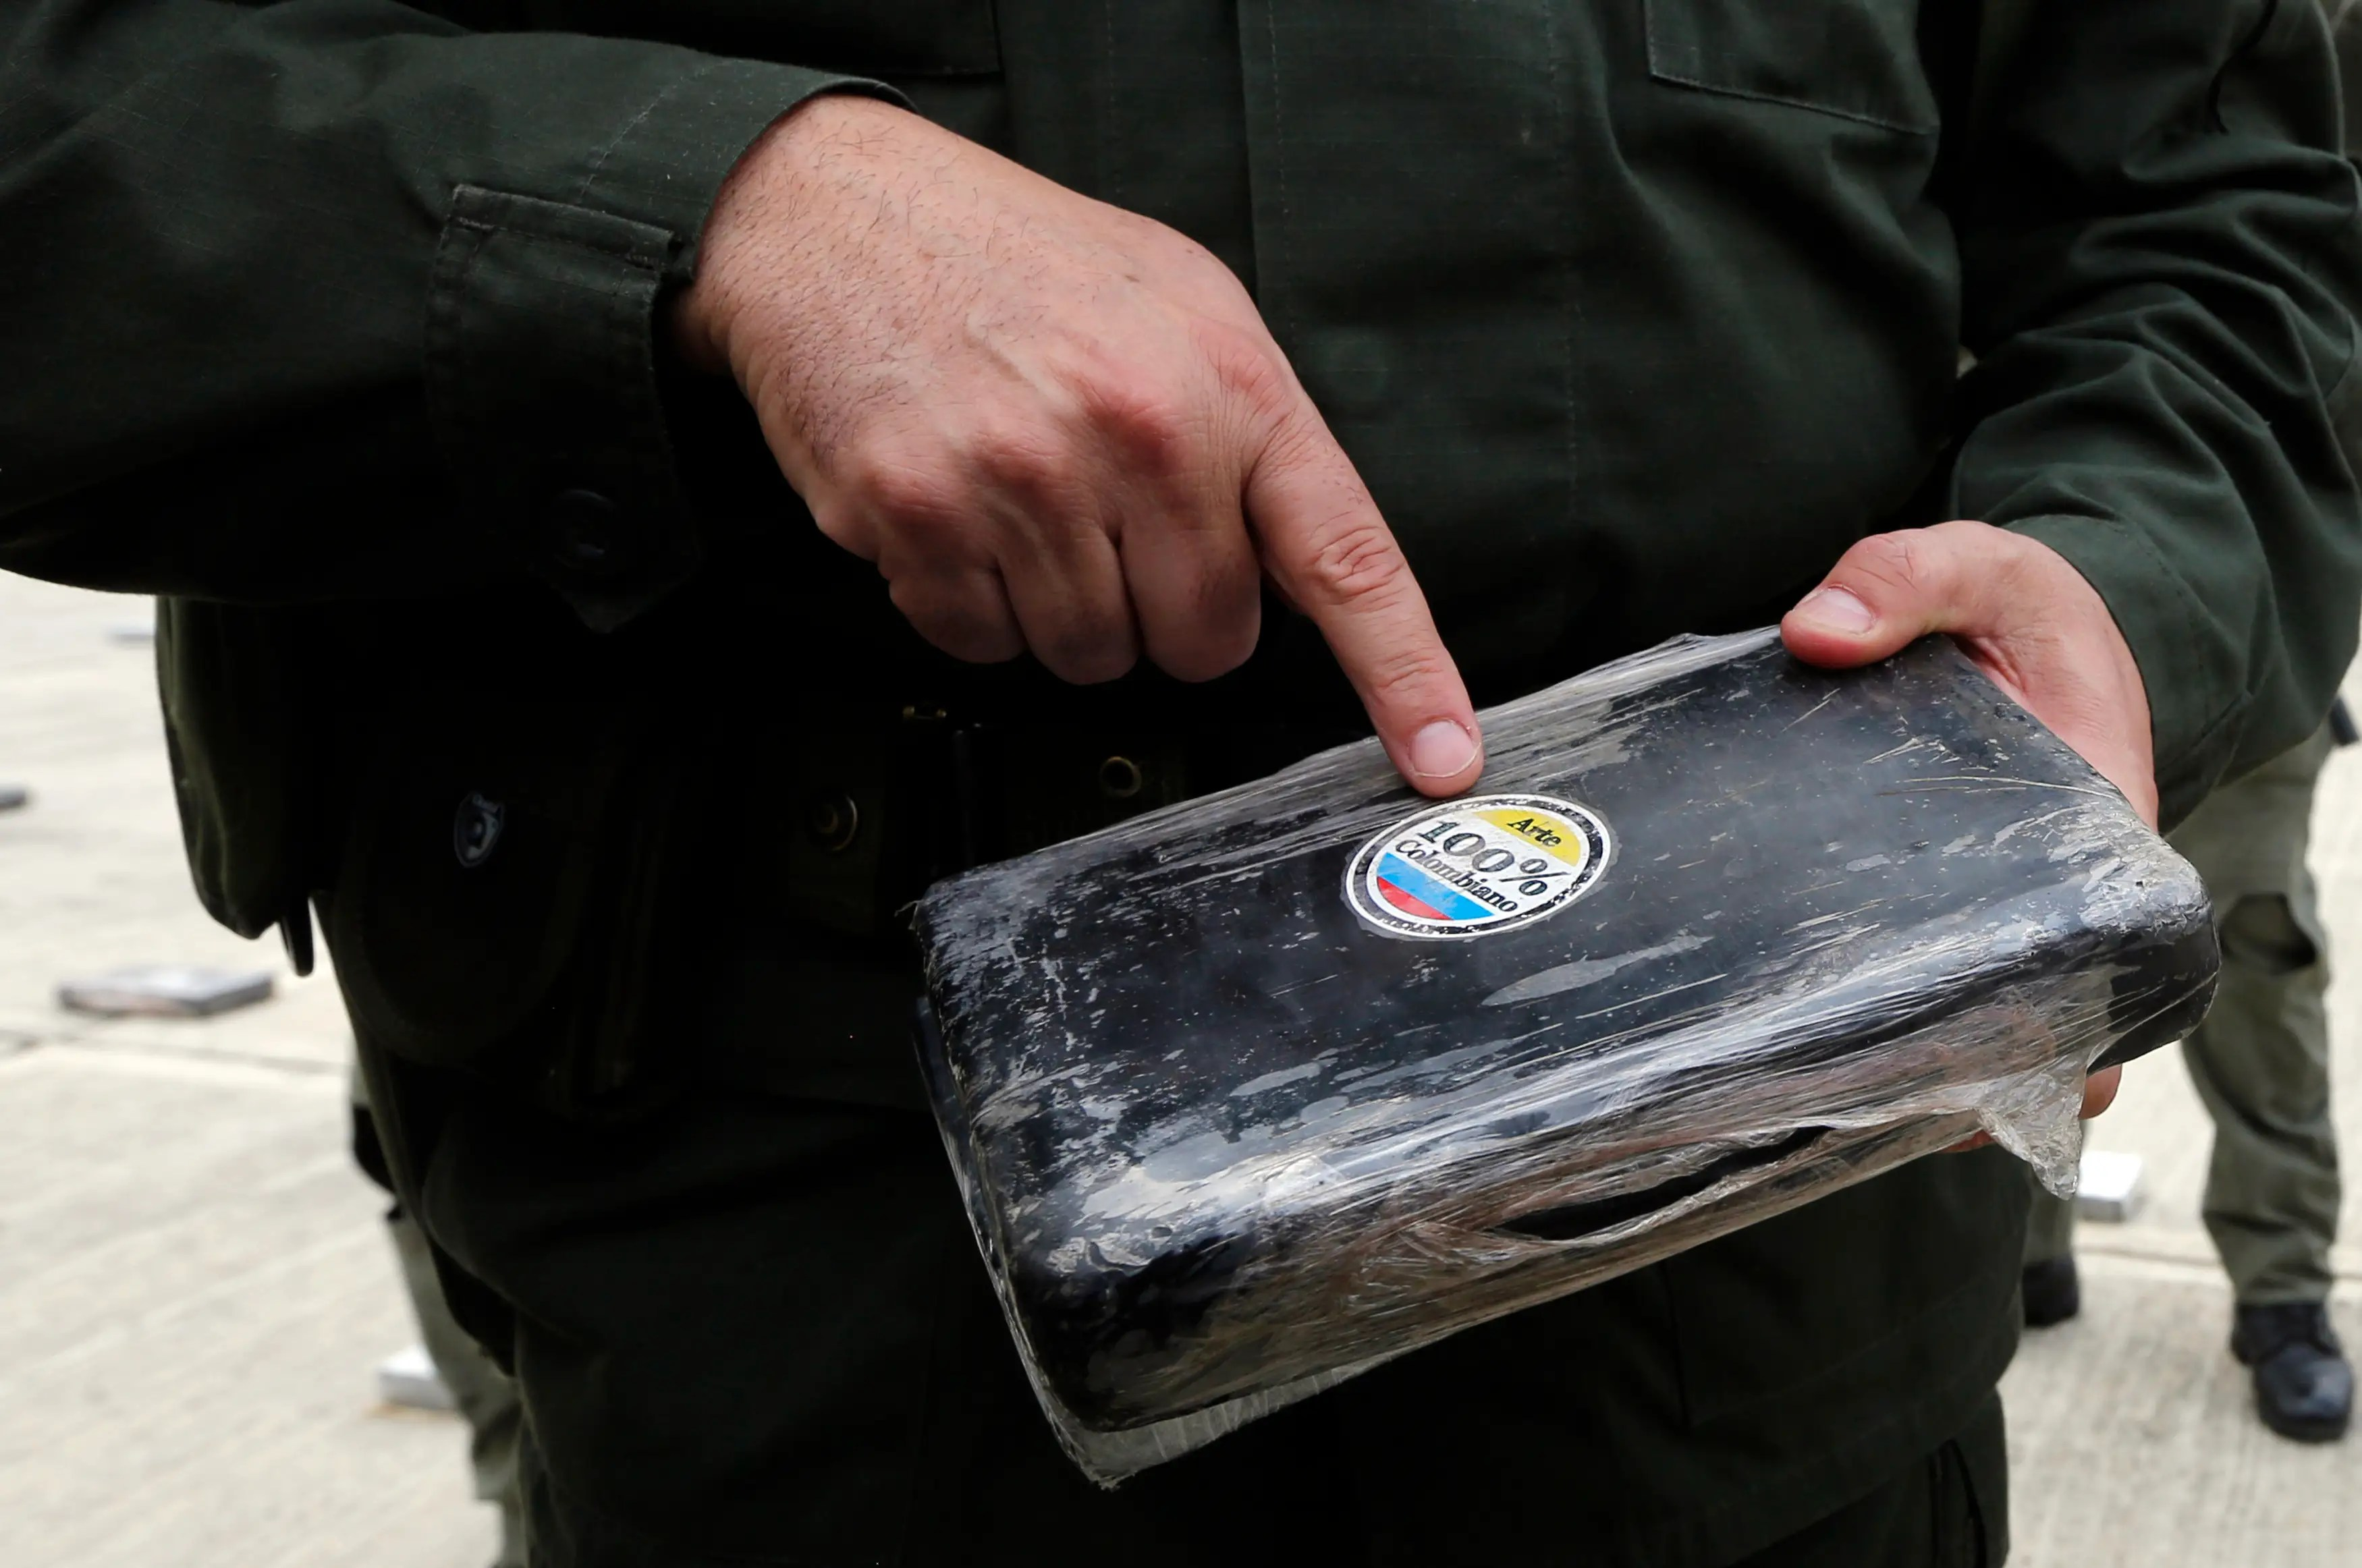 Colombia cocaine Antioquia smuggling trafficking drugs